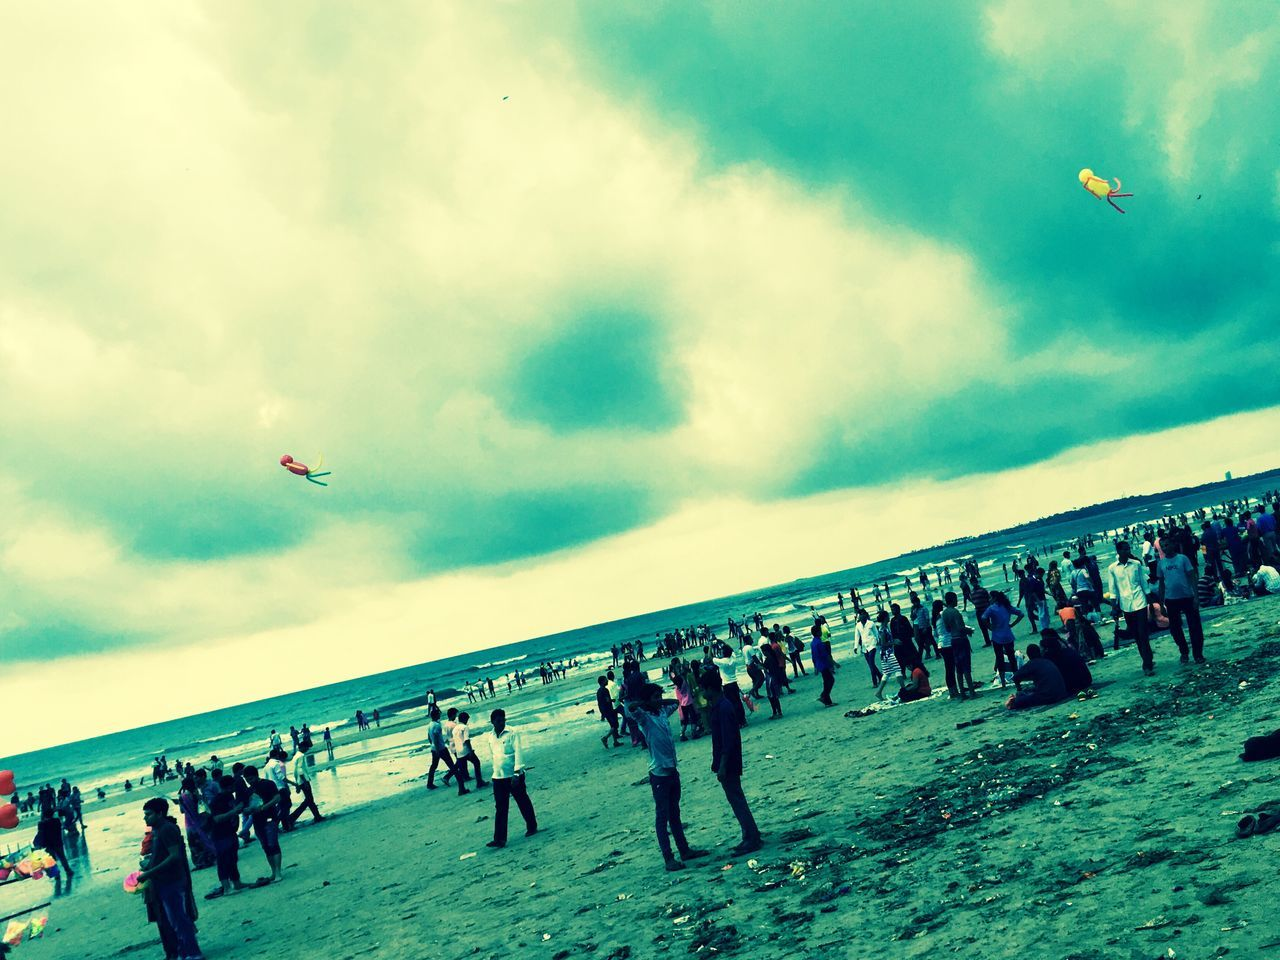 Travel2k16 Travelphotography Monsoonclouds Relaxing Beach Day Juhu MumbaiDiaries Lovingithere First Eyeem Photo